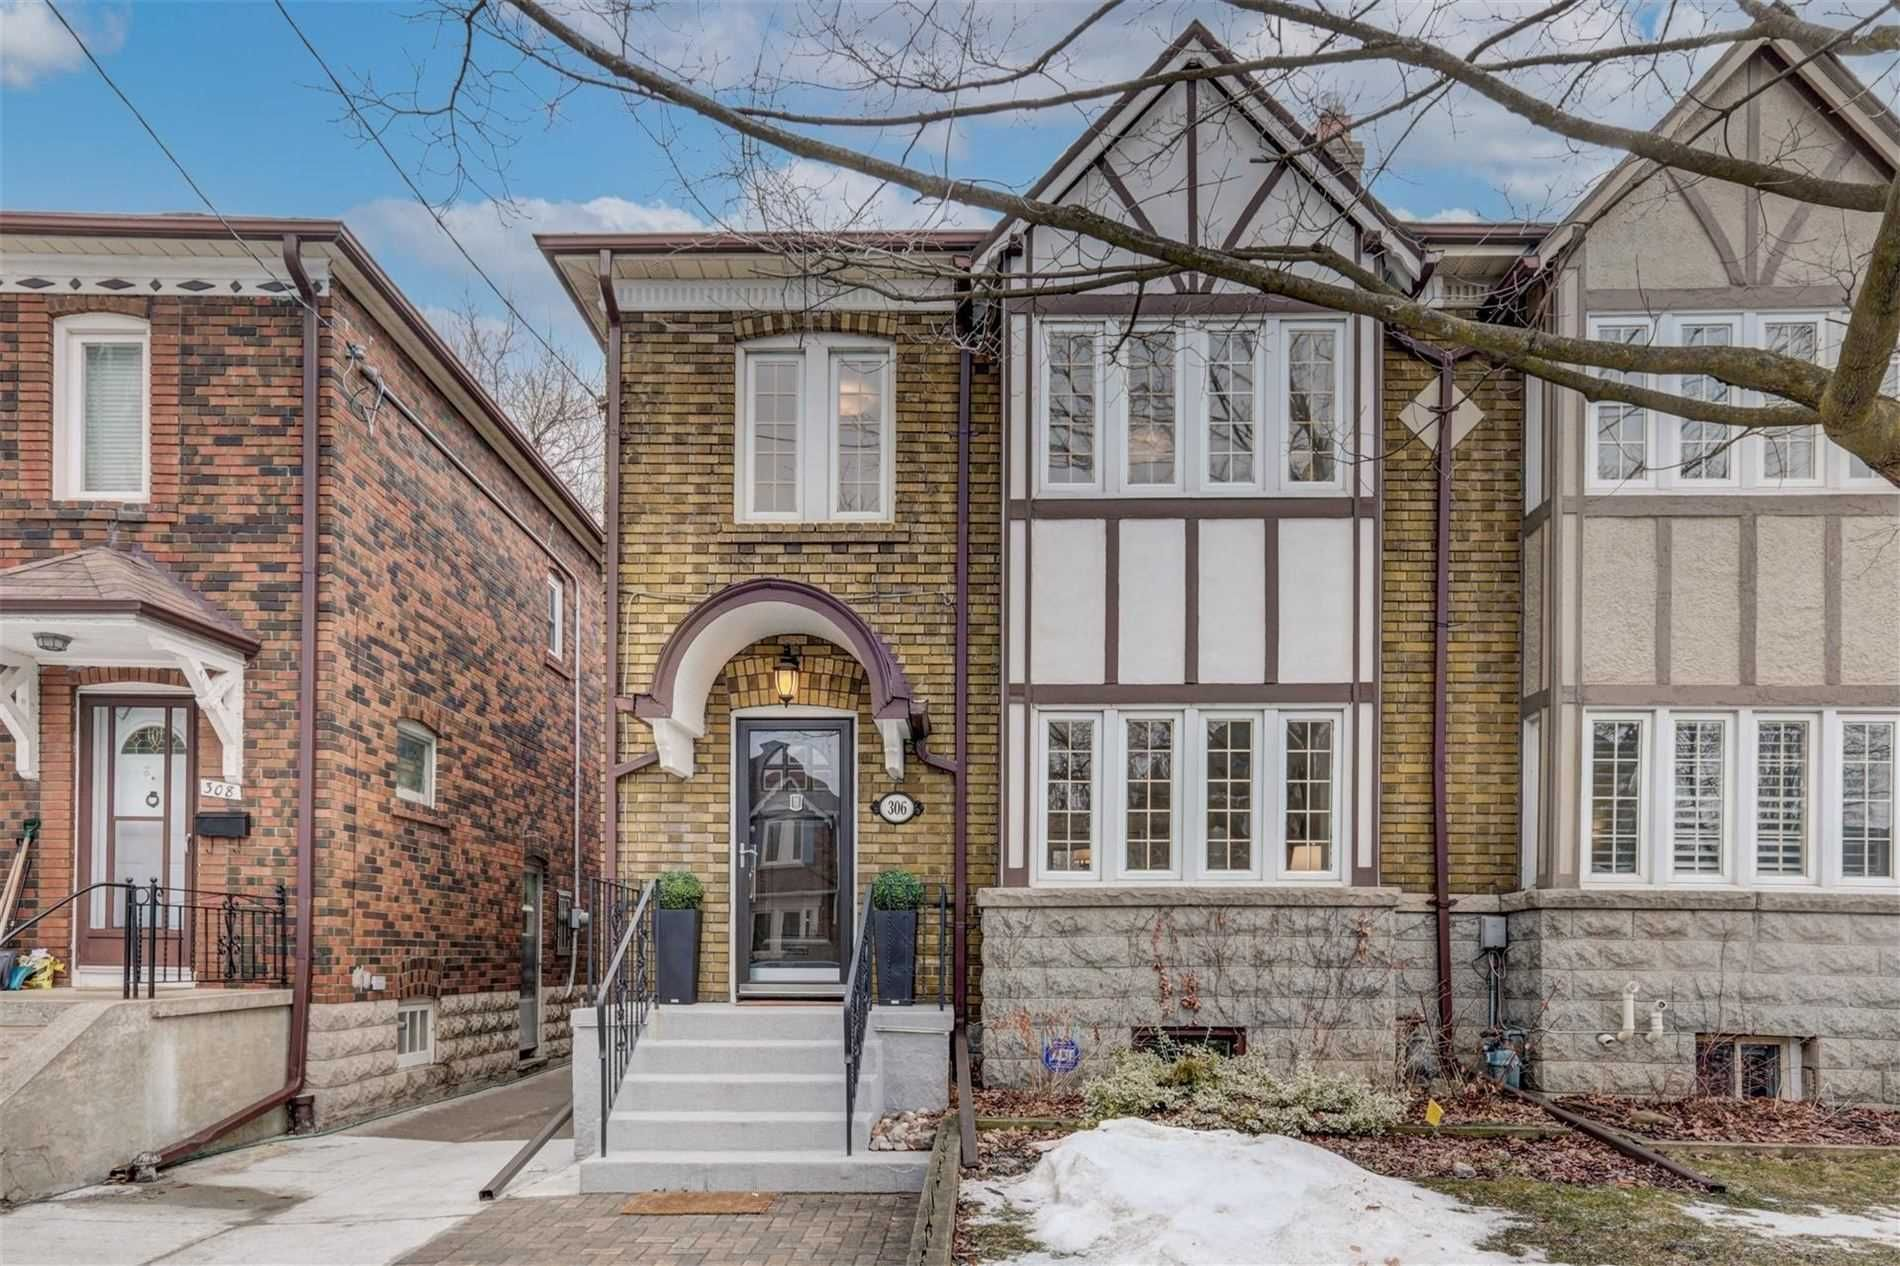 Main Photo: 306 Fairlawn Avenue in Toronto: Lawrence Park North House (2-Storey) for sale (Toronto C04)  : MLS®# C5135312